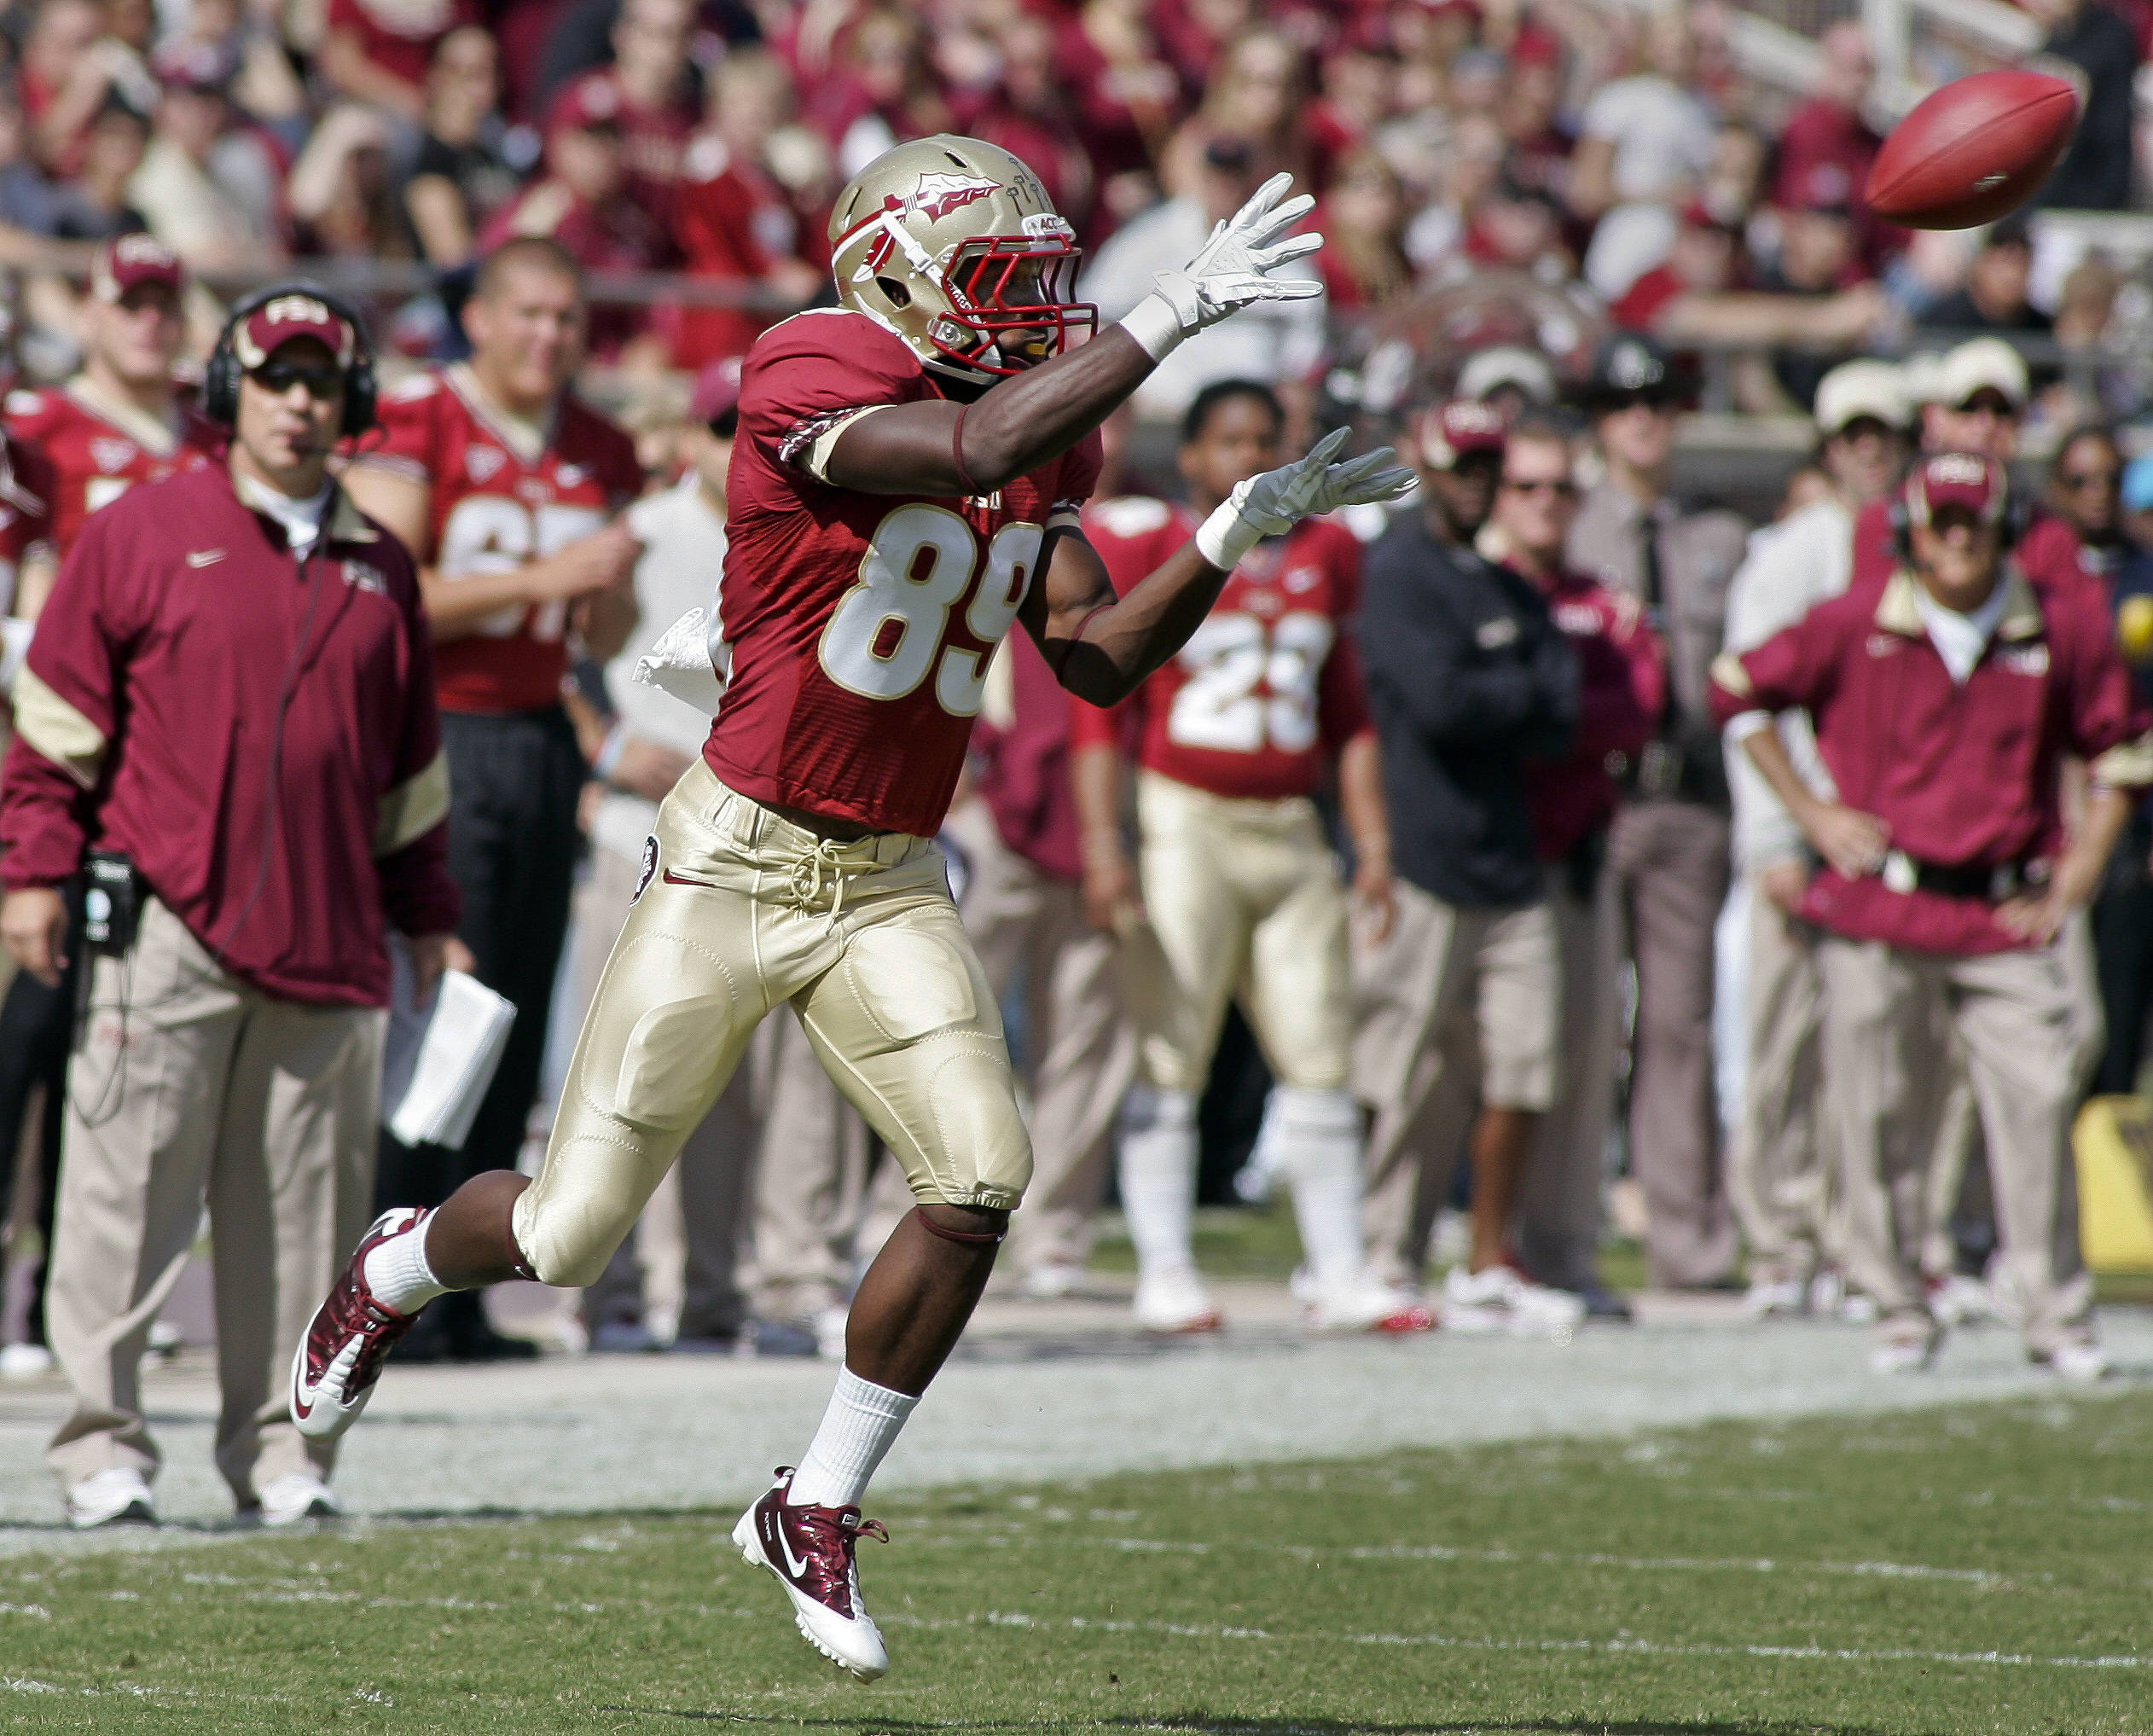 Florida State wide receiver Christian Green (89) makes a 32-yard catch in the first quarter against North Carolina State. (AP Photo/Phil Sears)